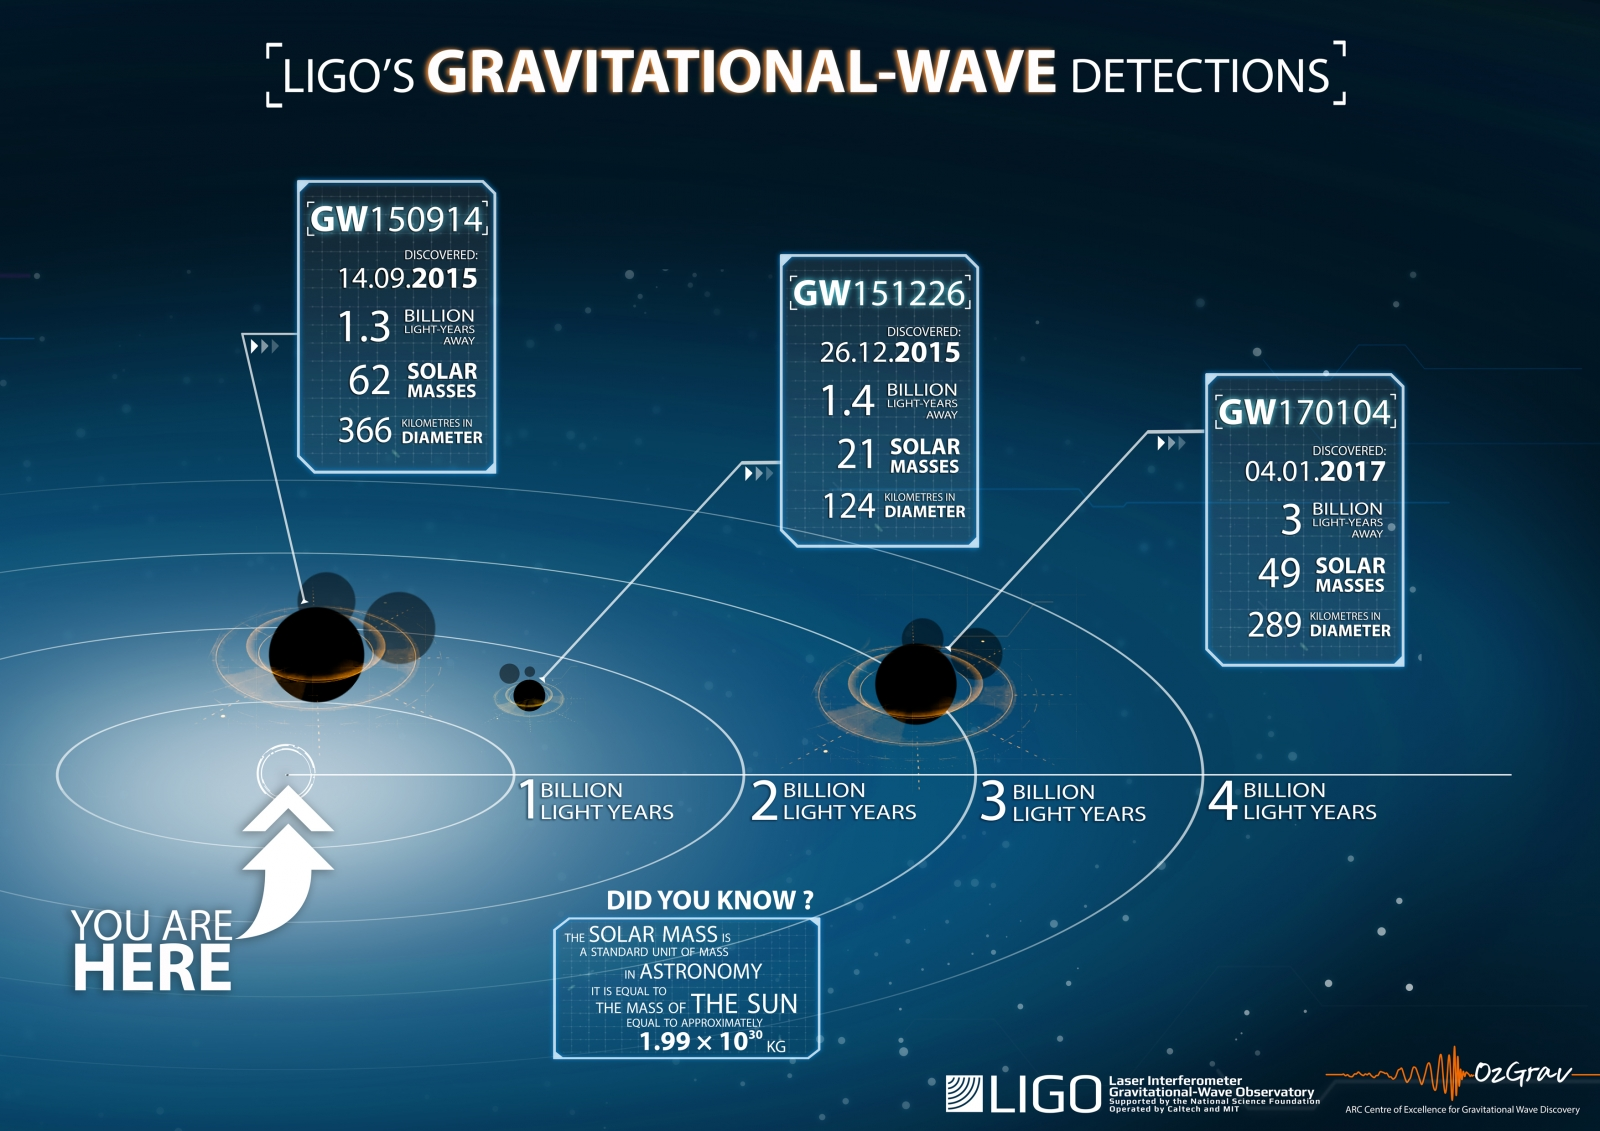 'Dancing' black holes yield LIGO's third detection of gravitational waves